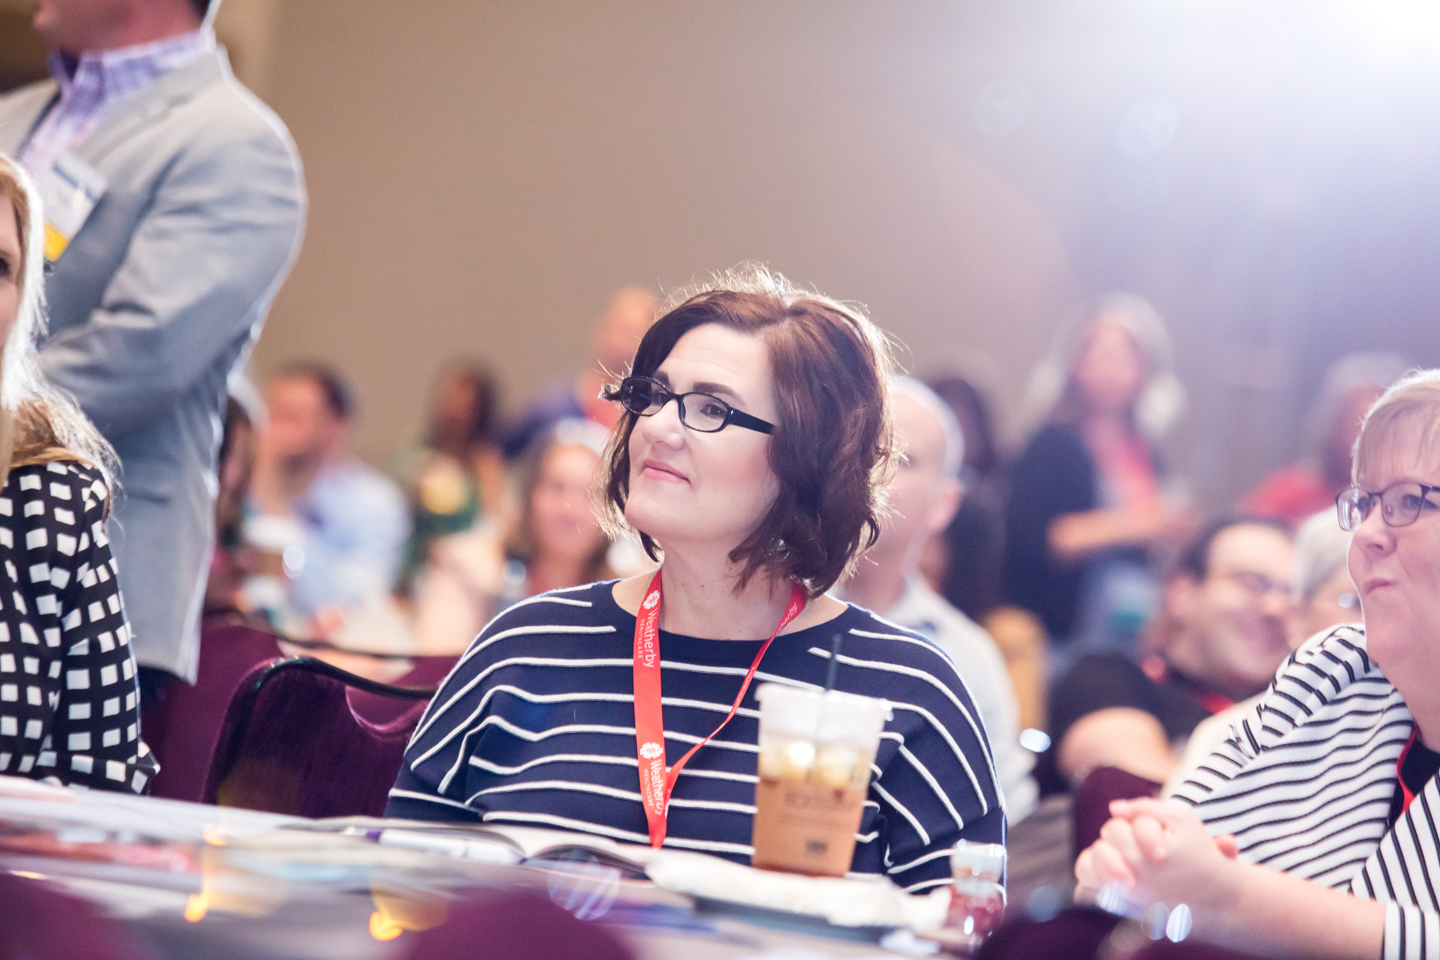 AAPPR-Conference-Expo-Professional-Event-Photography-Photographer-Orlando-audience-employees-5.jpg